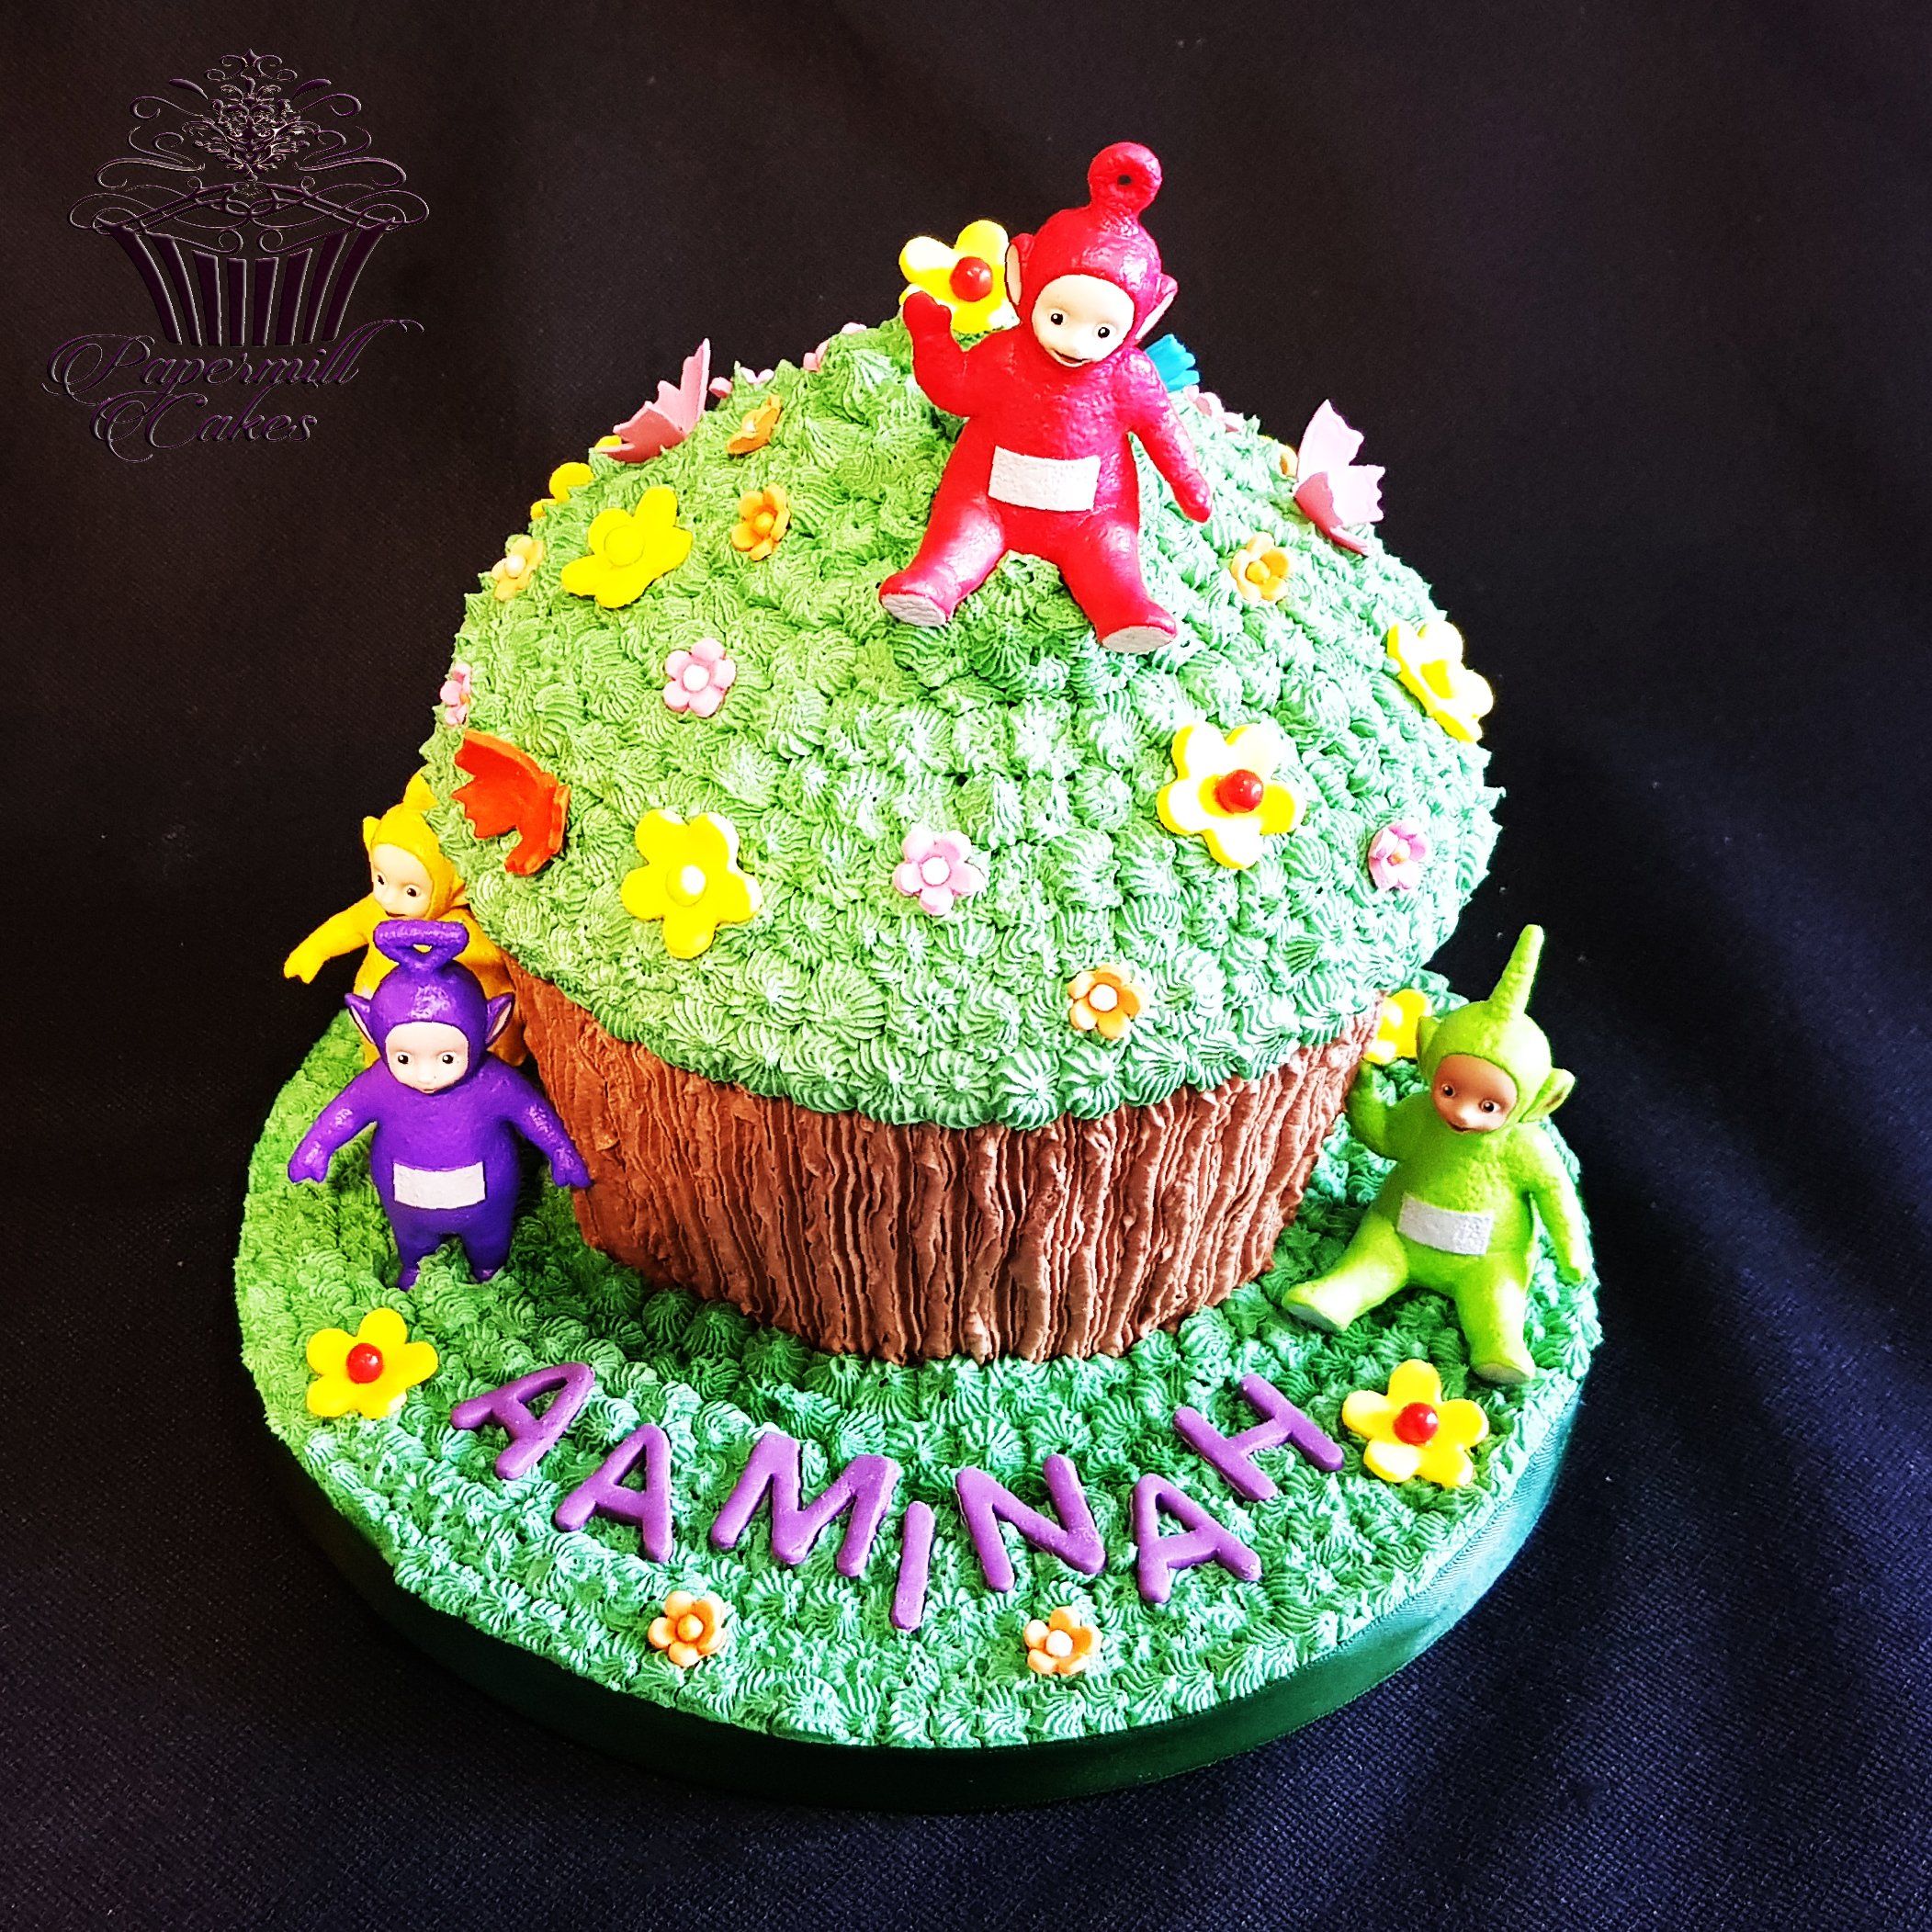 Teletubbies Giant Cupcake